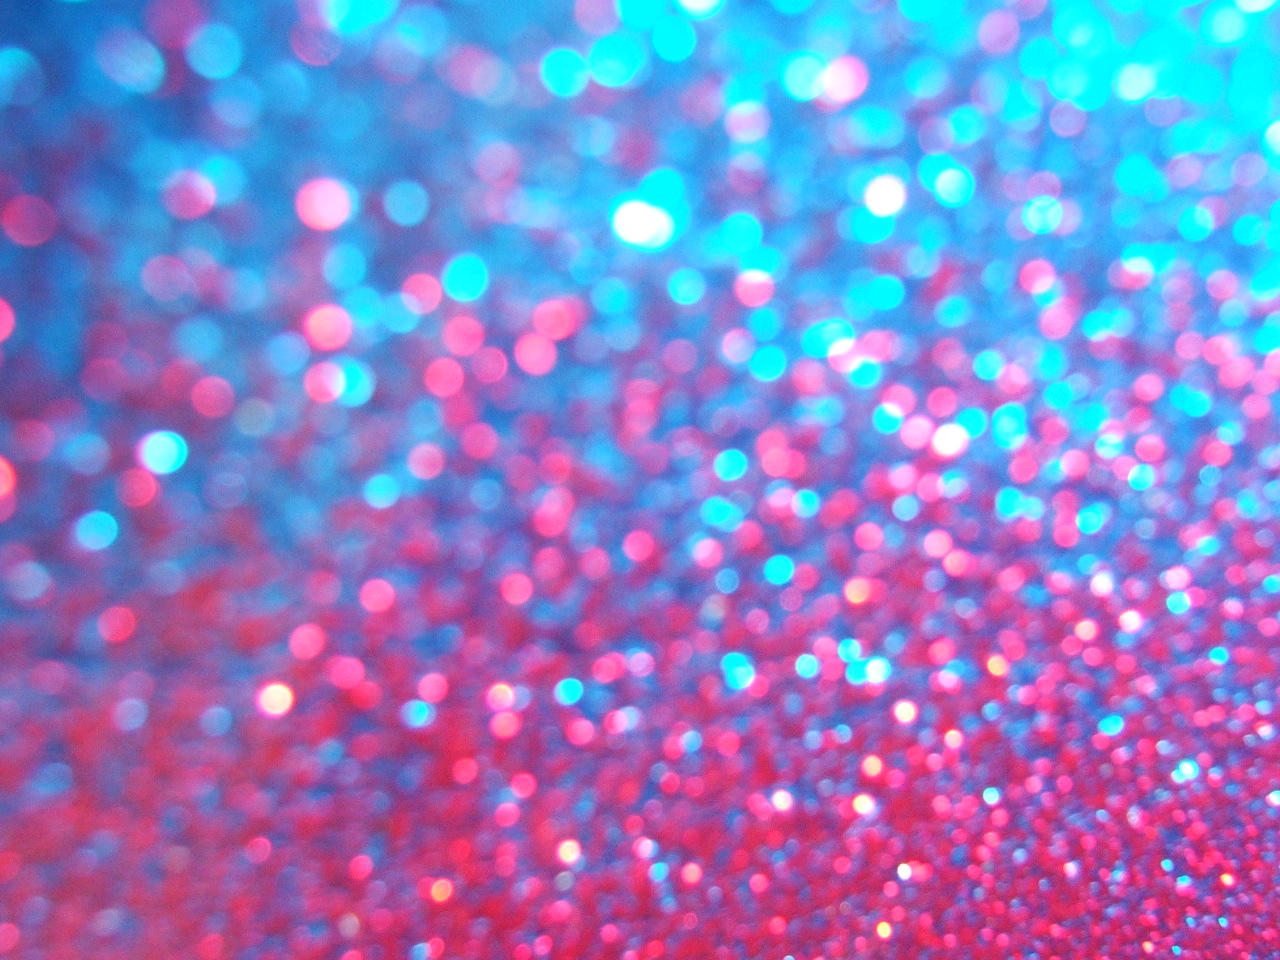 Pink Glitter Tumblr Wallpaper Desktop HD